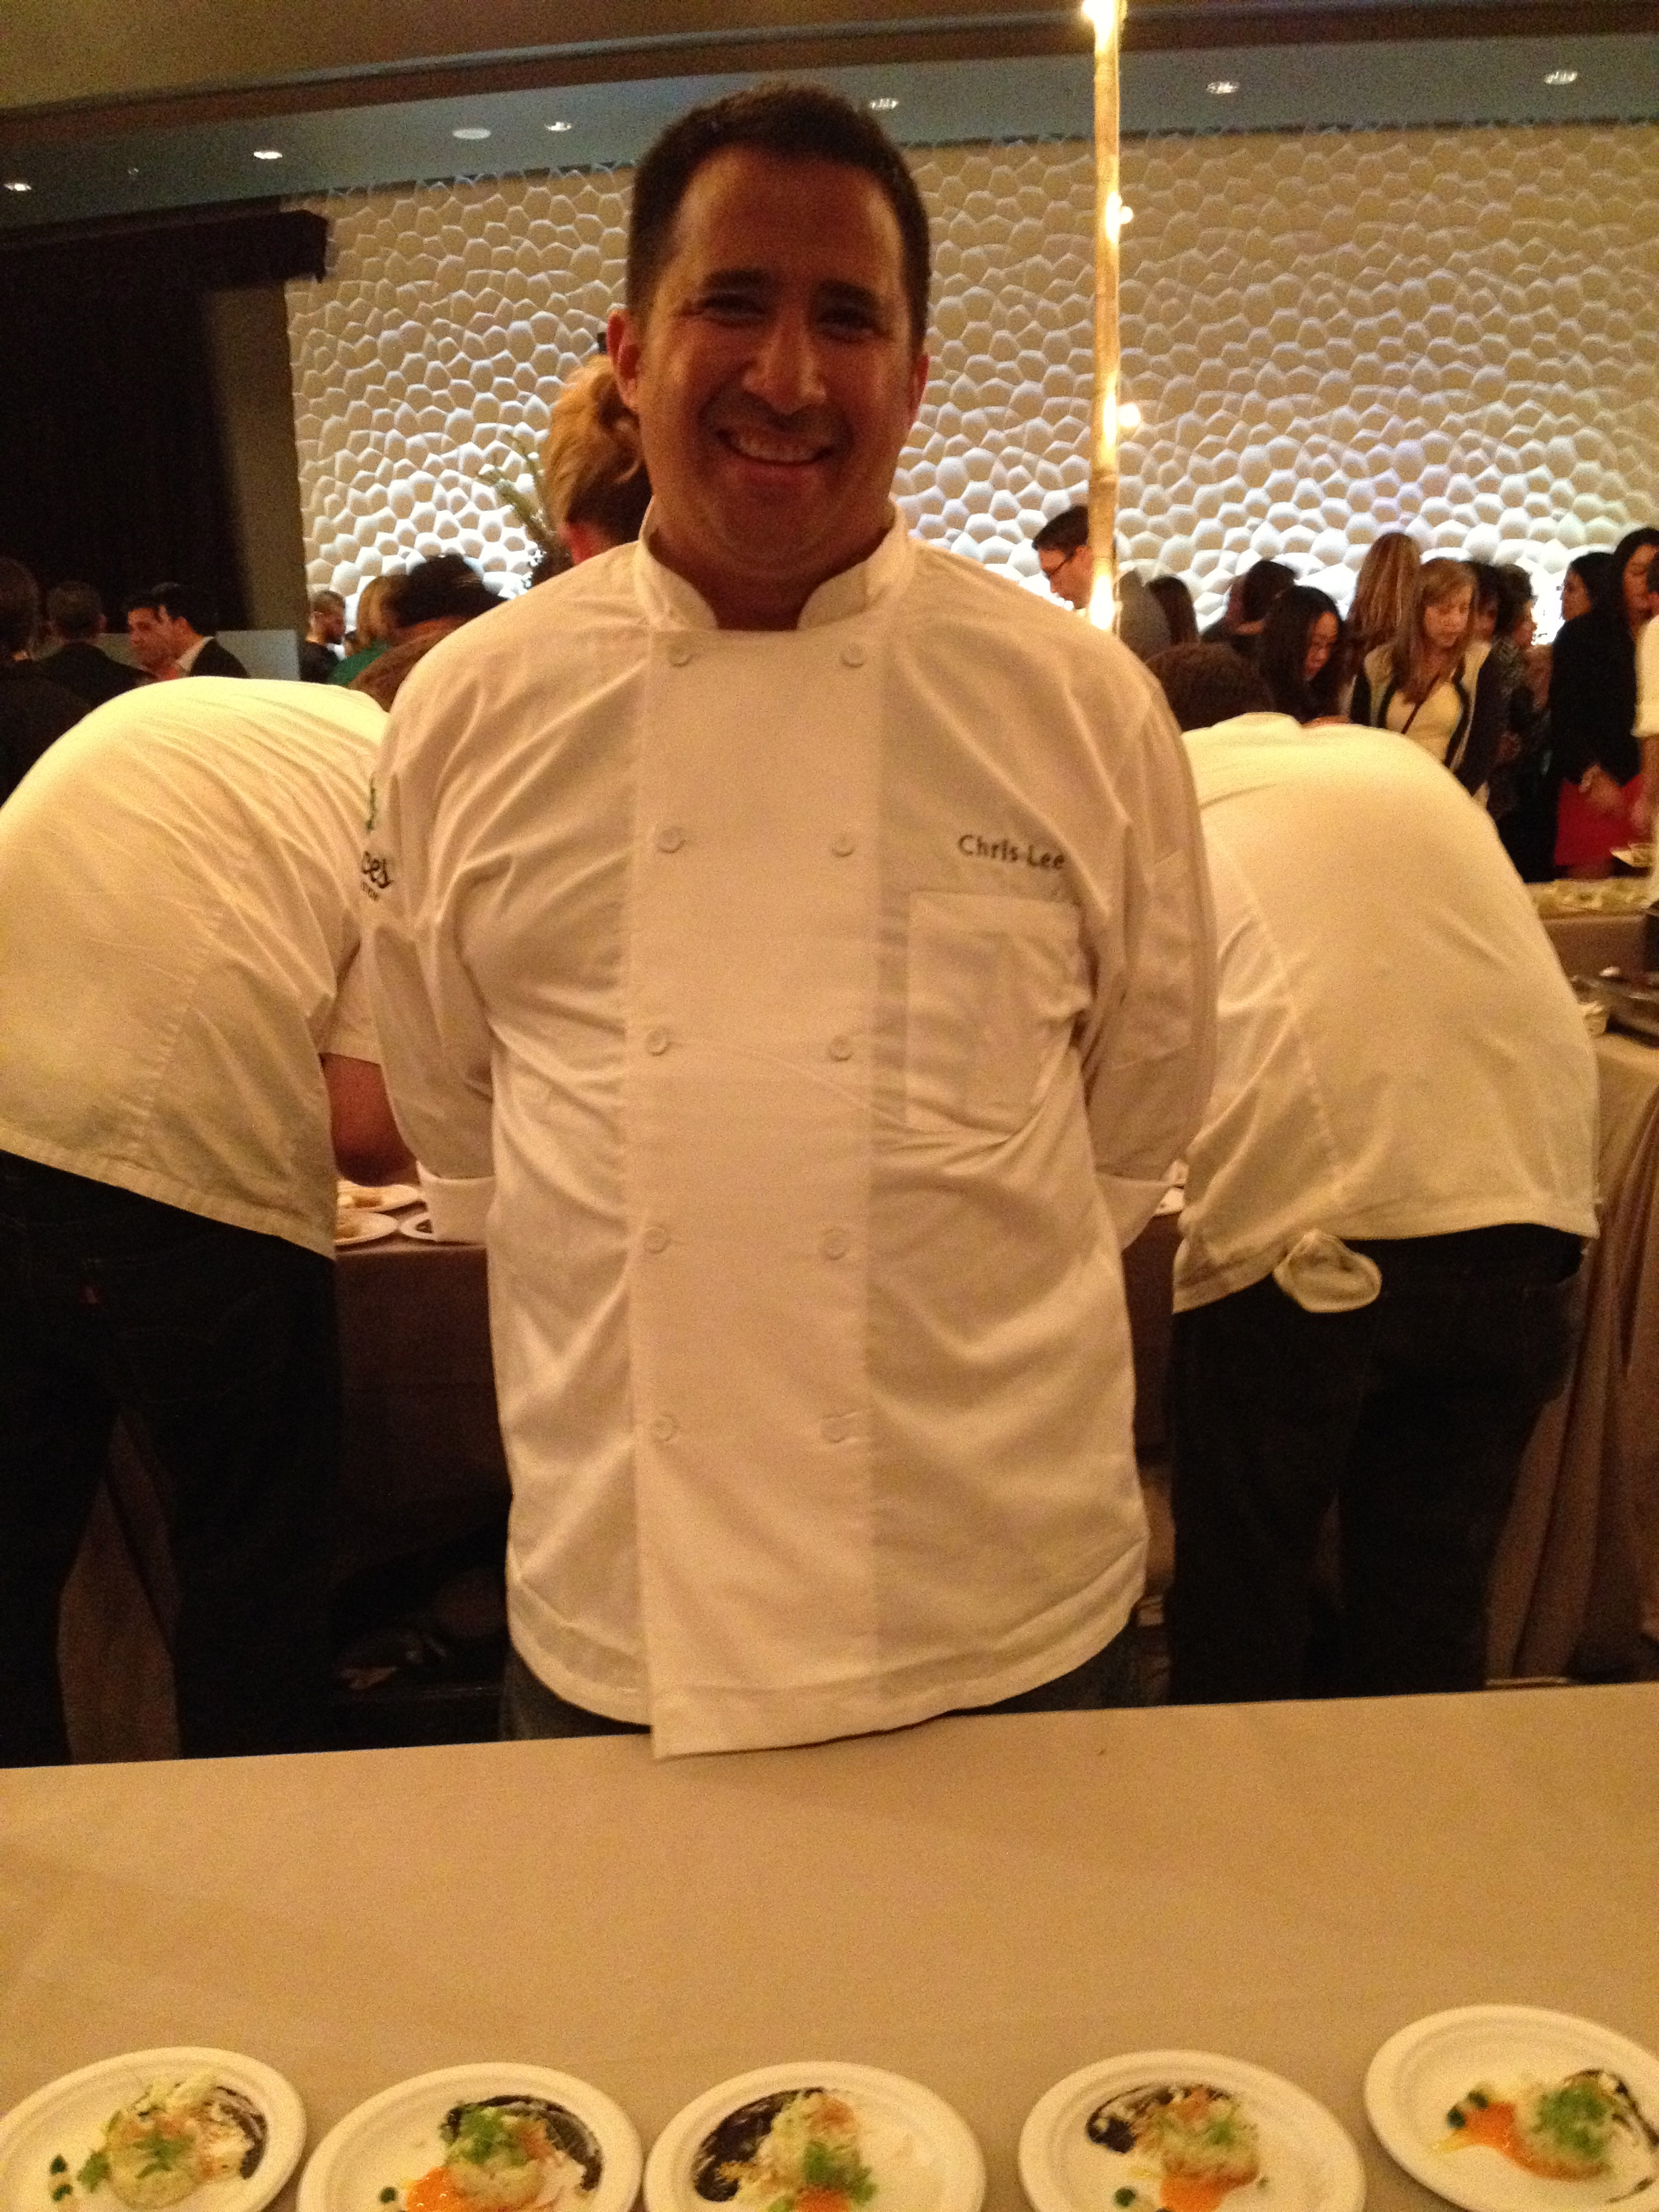 41 North & Christie's executive chef Christopher Lee